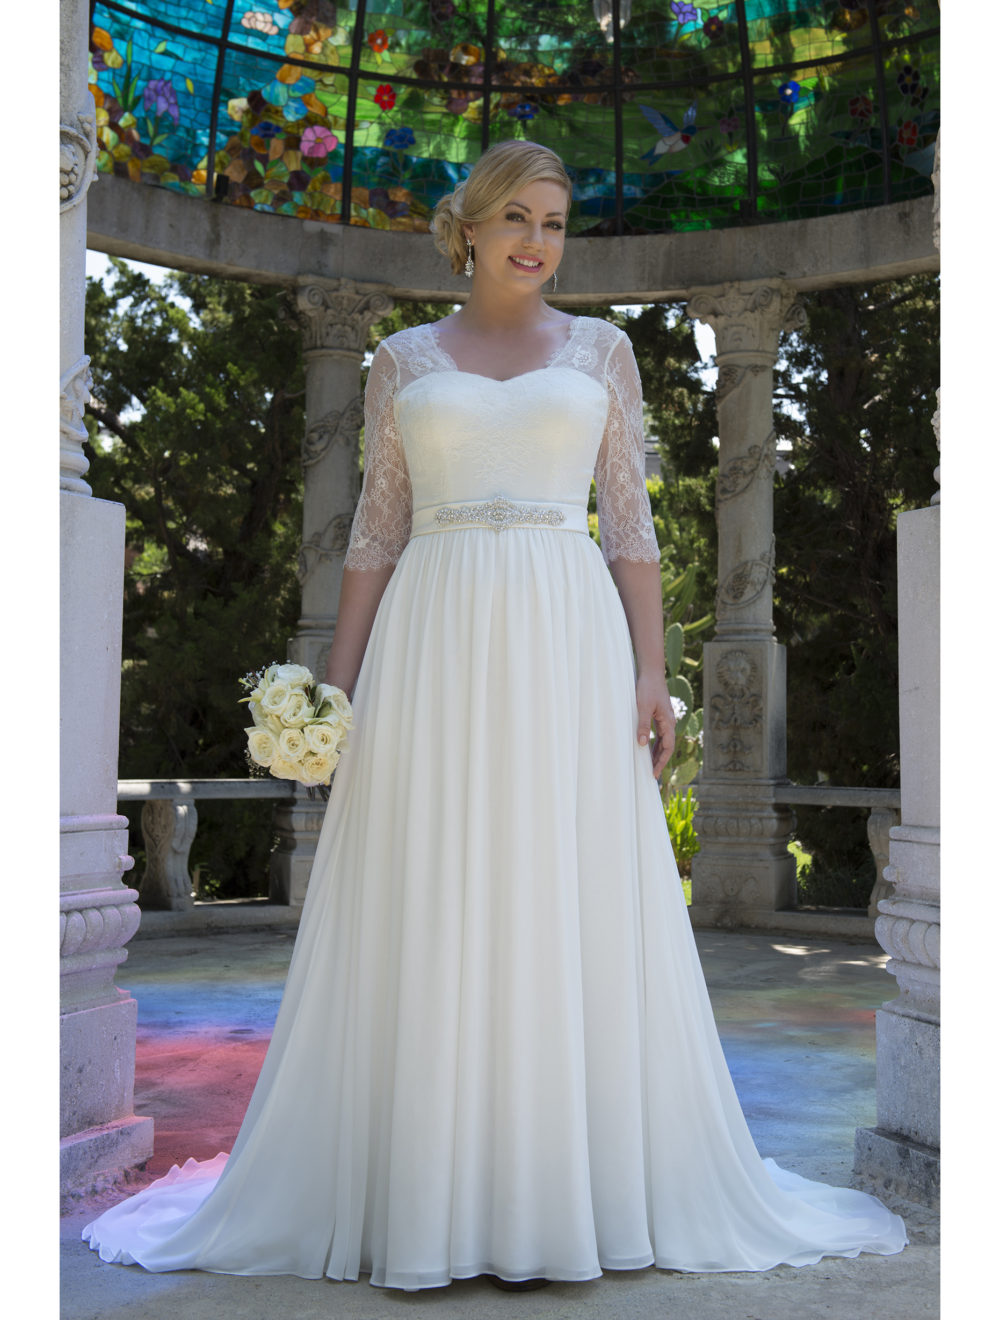 Informal Modest Plus Size Wedding Dresses With 3/4 Sleeves 2019 Big Size Lace Chiffon Reception Bridal Gowns Country Western